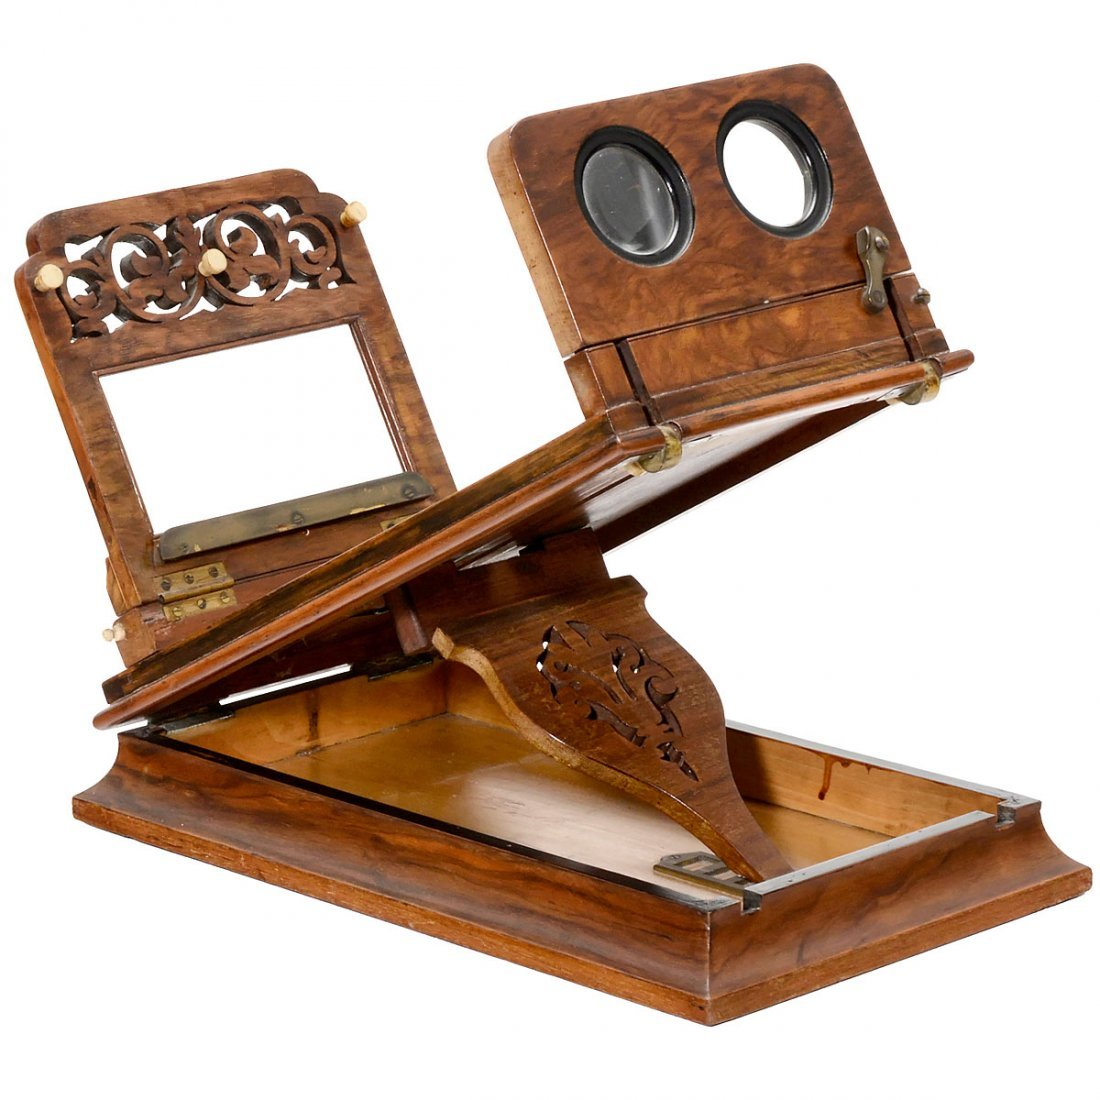 Stereo Graphoscope by E.G. Wood, c. 1870